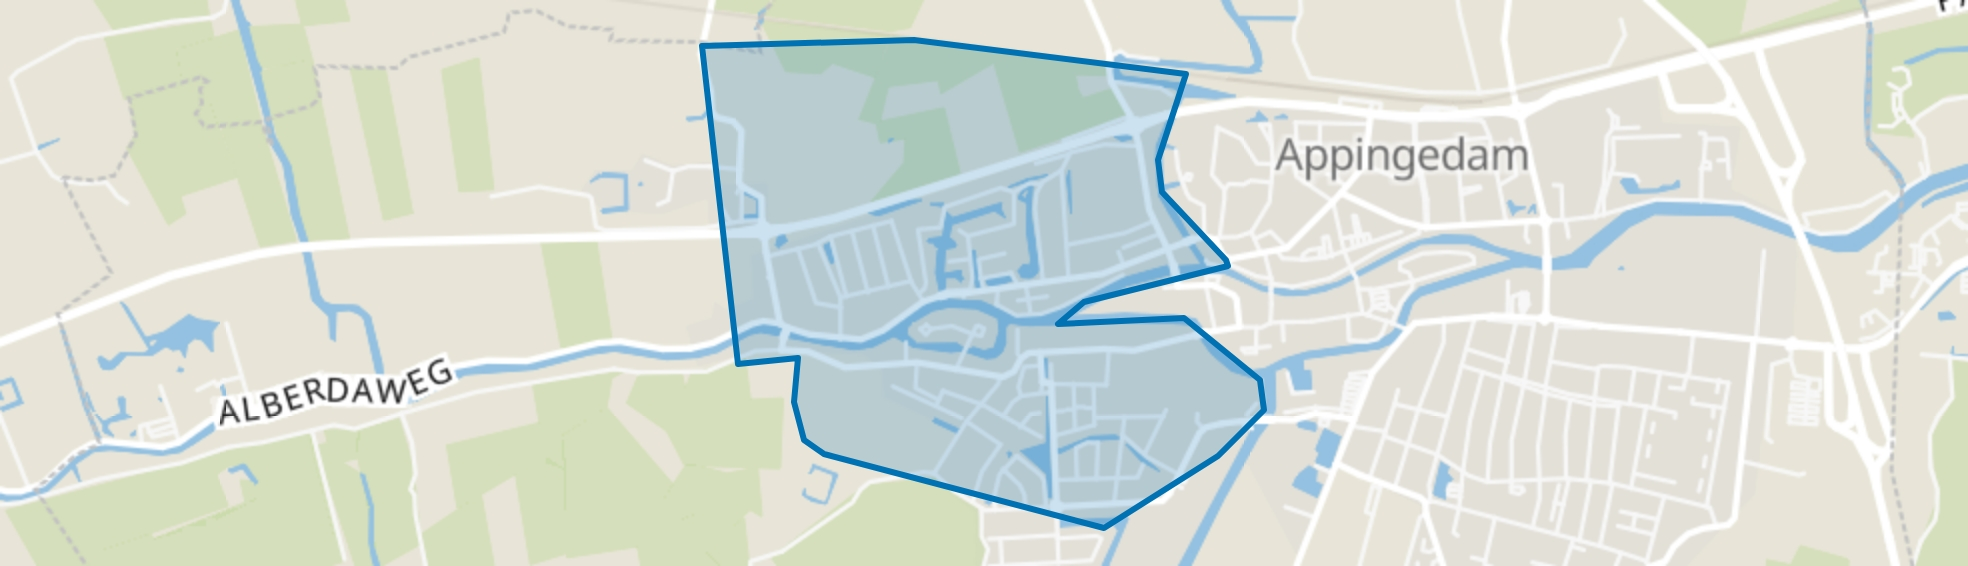 Appingedam-West, Appingedam map